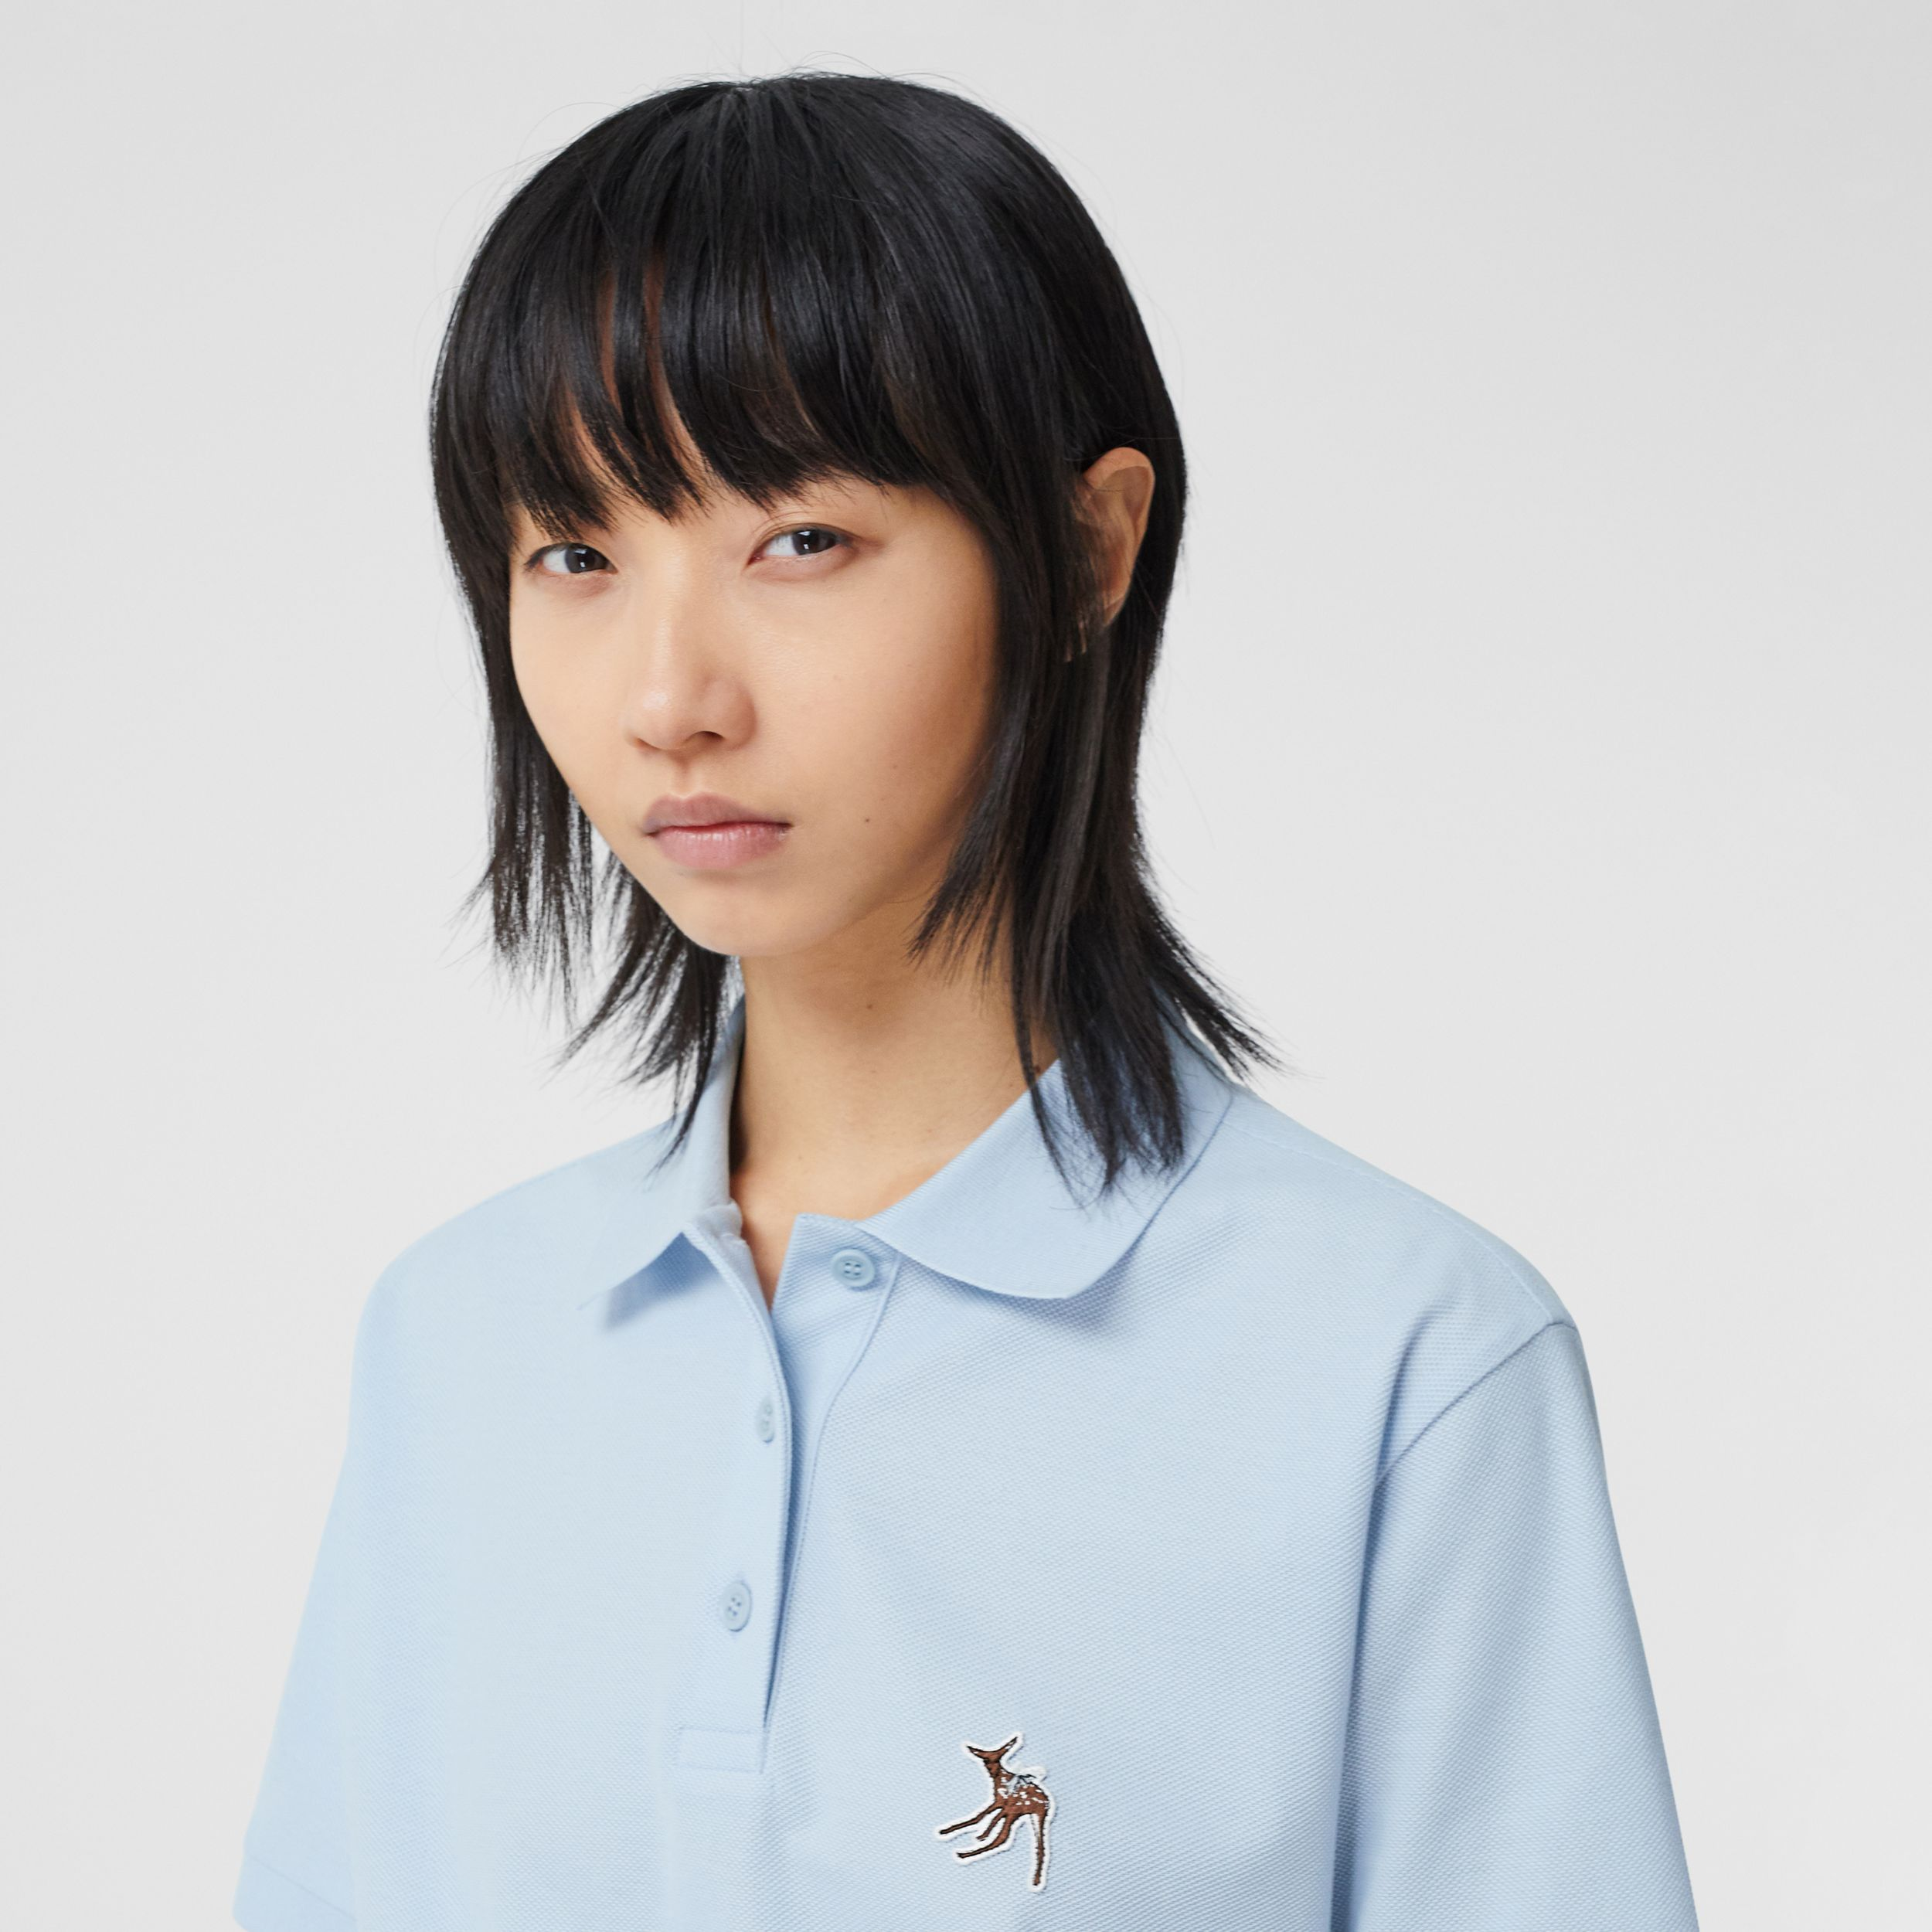 Deer Motif Cotton Piqué Oversized Polo Shirt in Pale Blue - Women | Burberry - 2